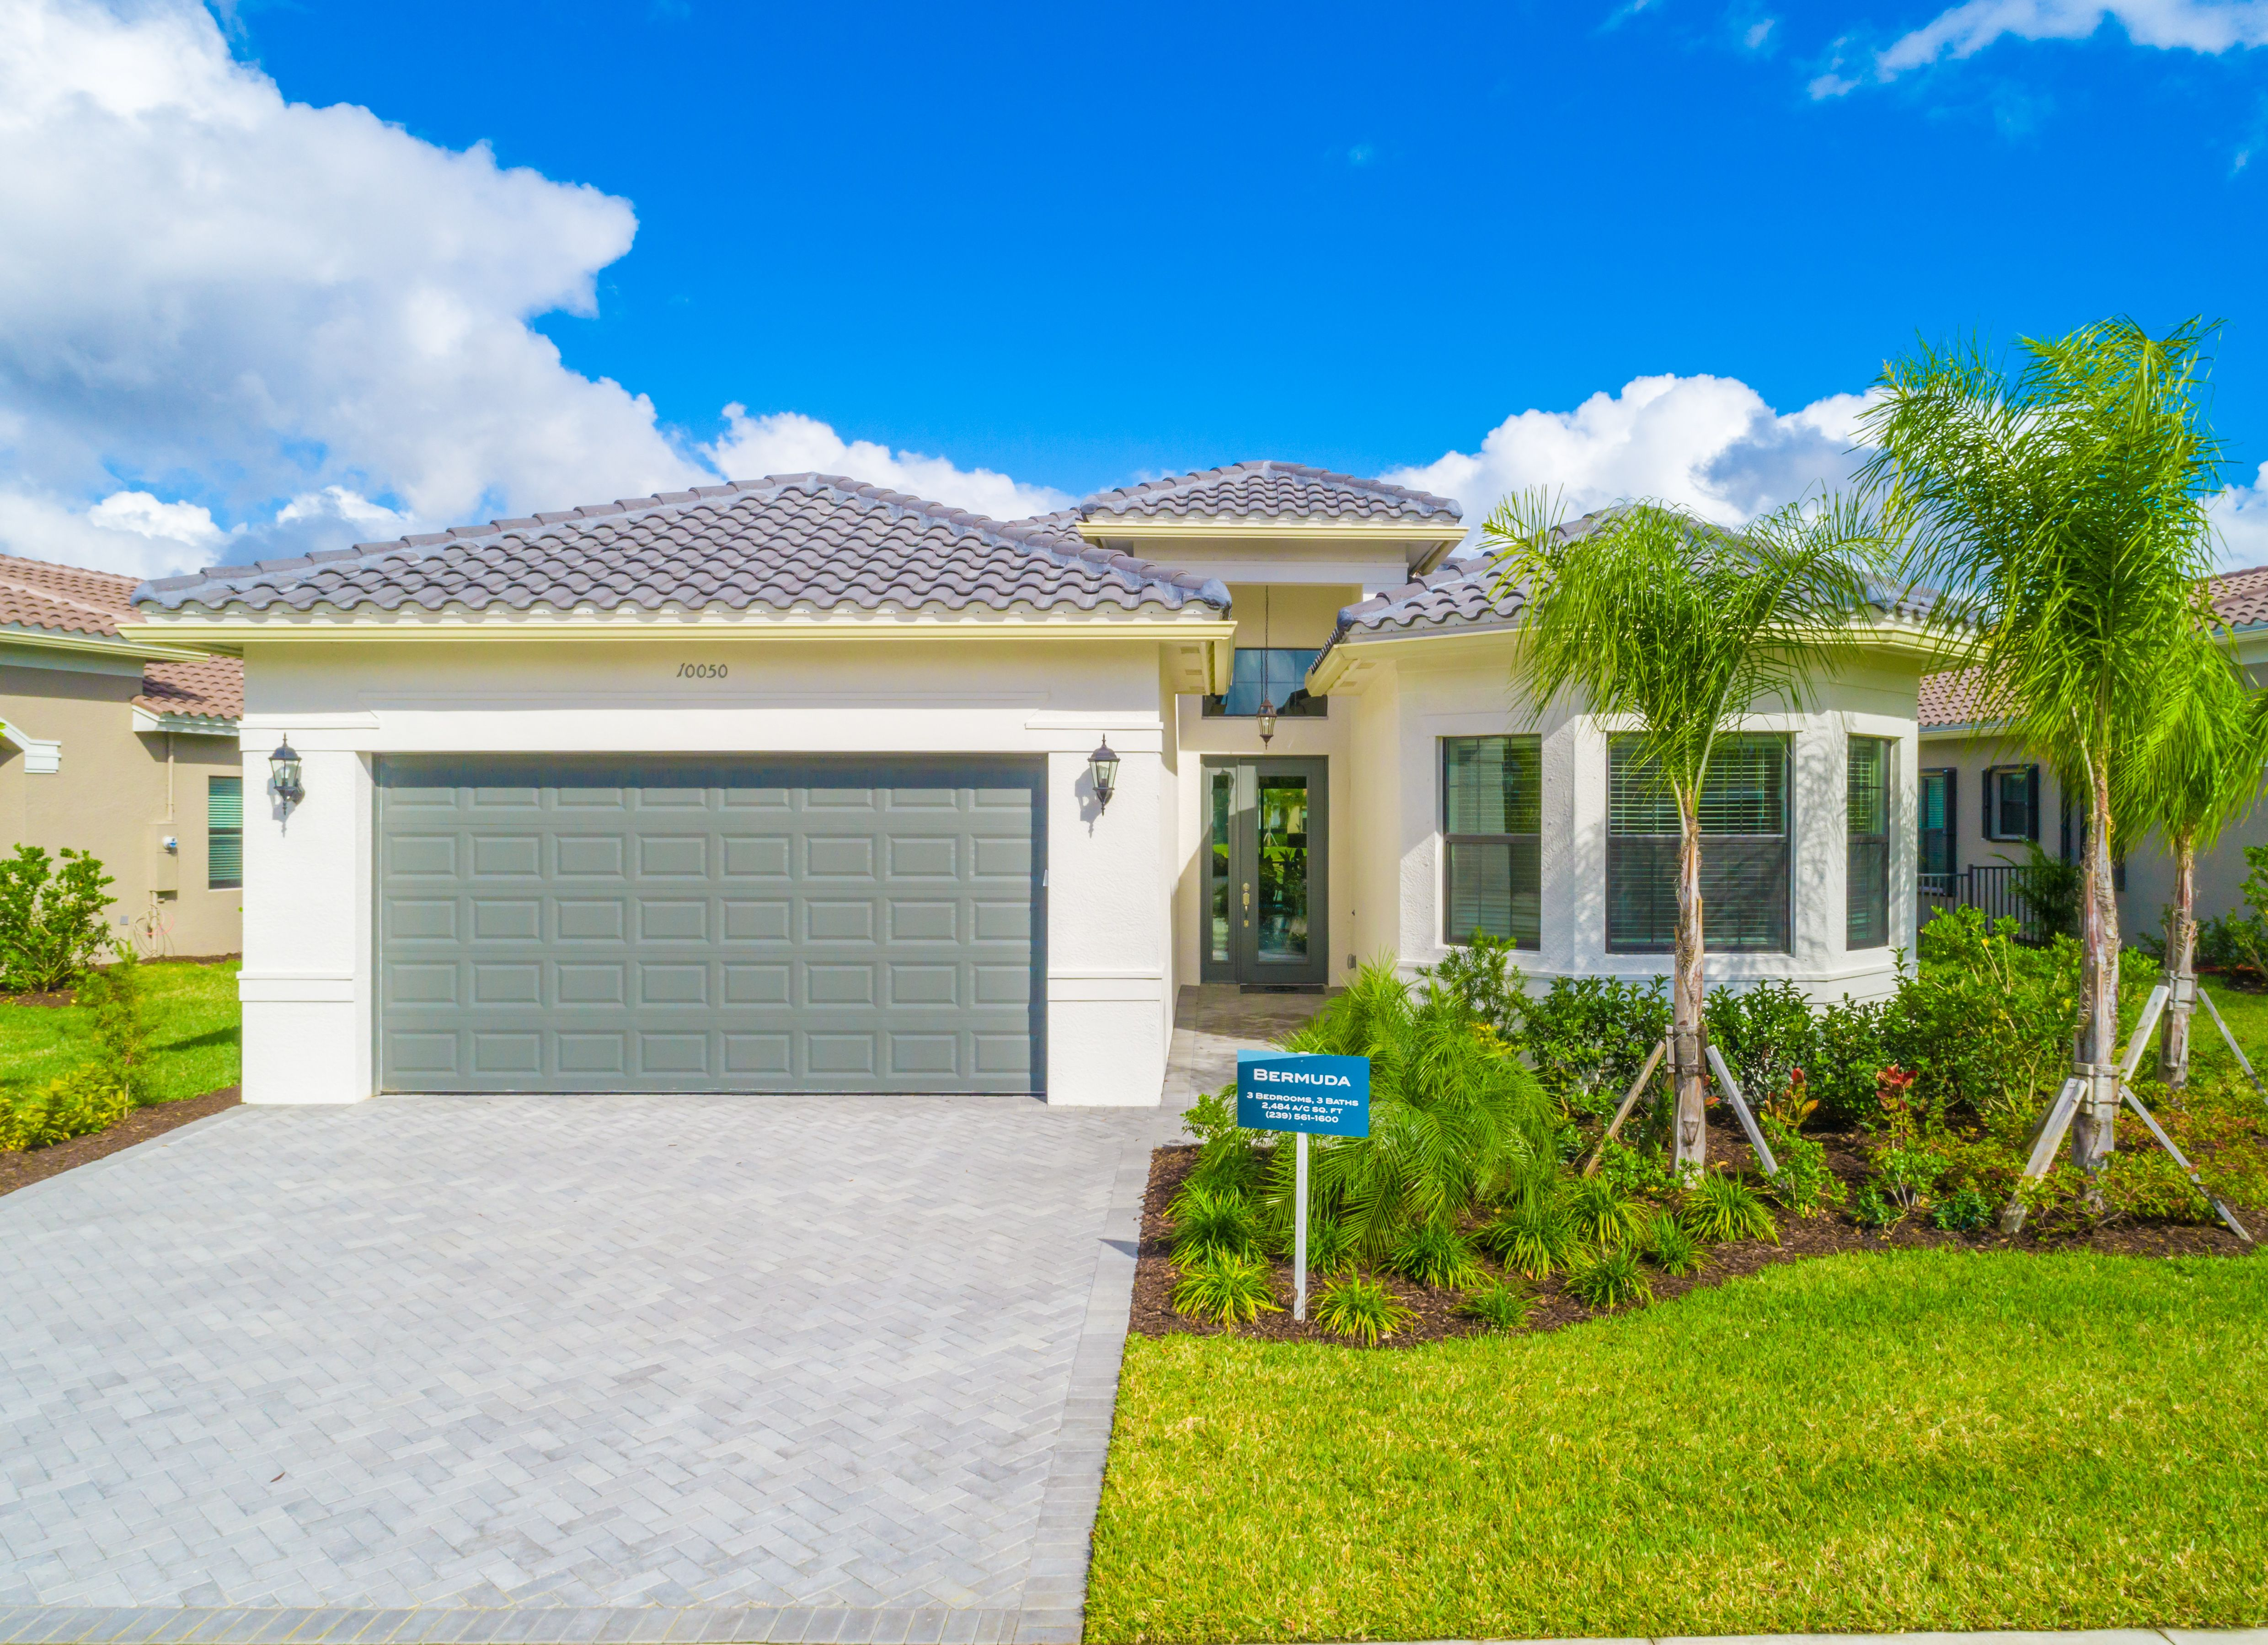 Models for Sale in Fort Myers, FL GL Homes in 2020